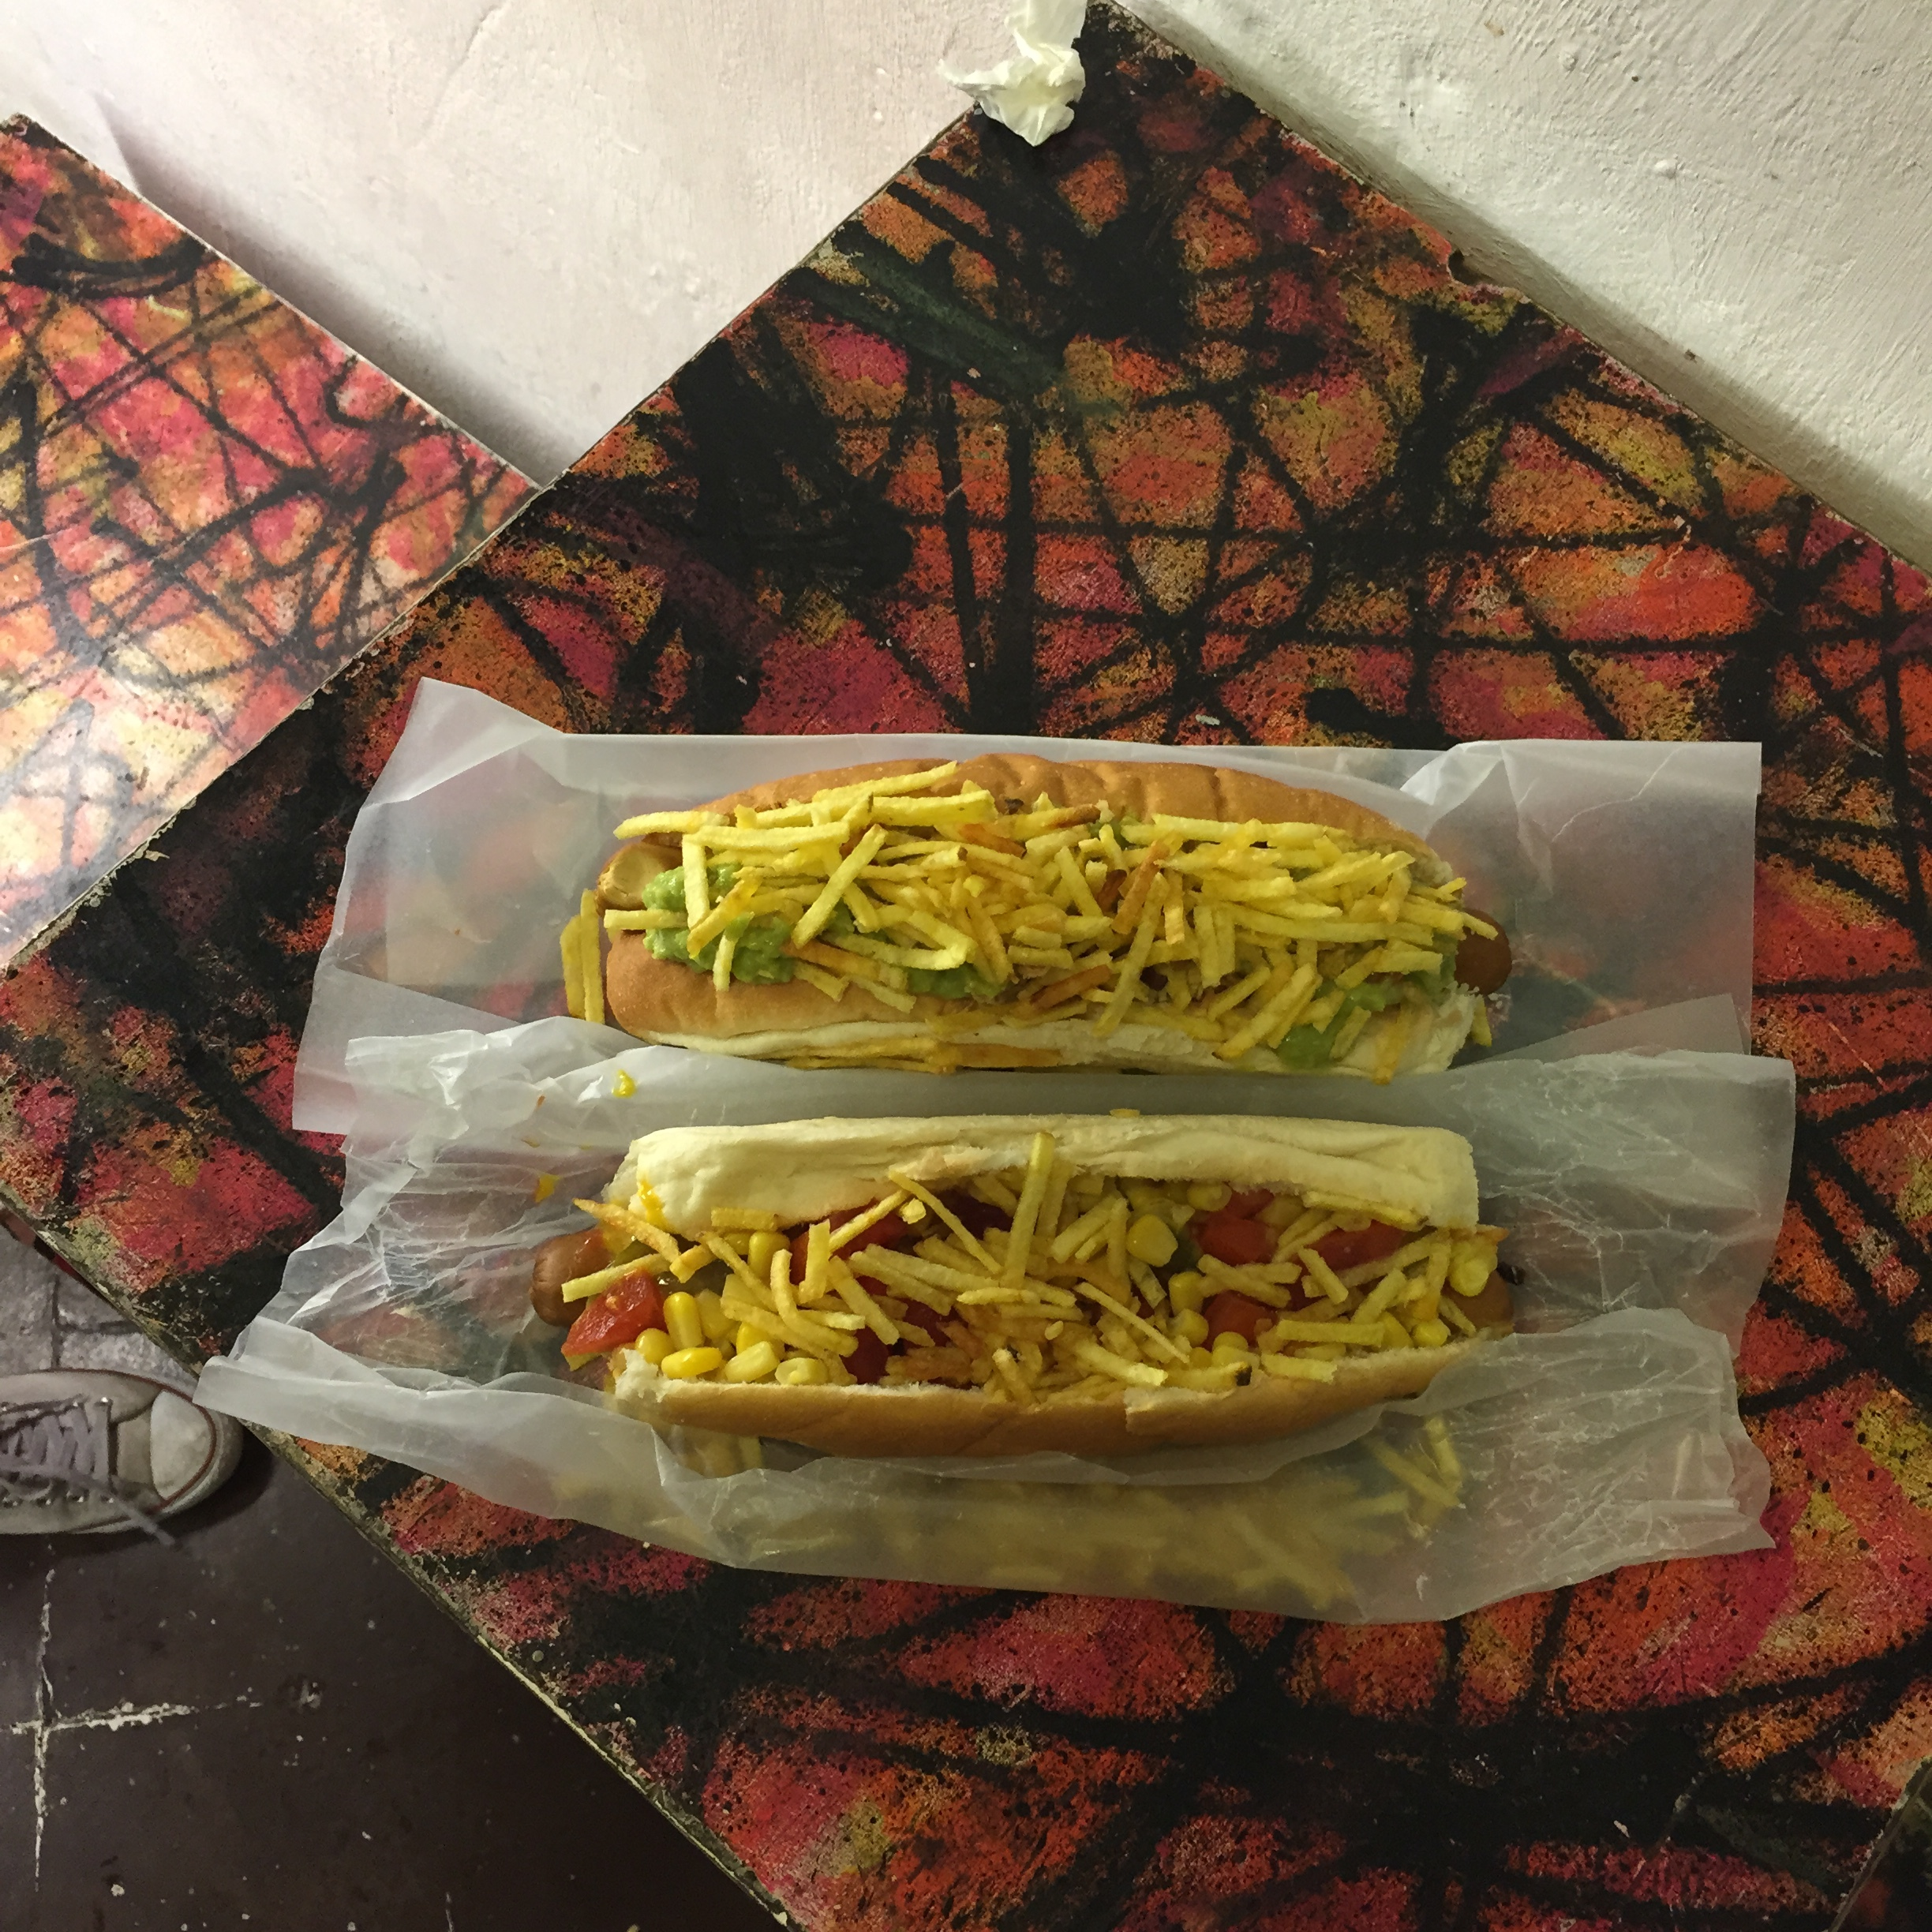 VEGAN HOT DOGS IN BARCELONA. THE DOG IS HOT.